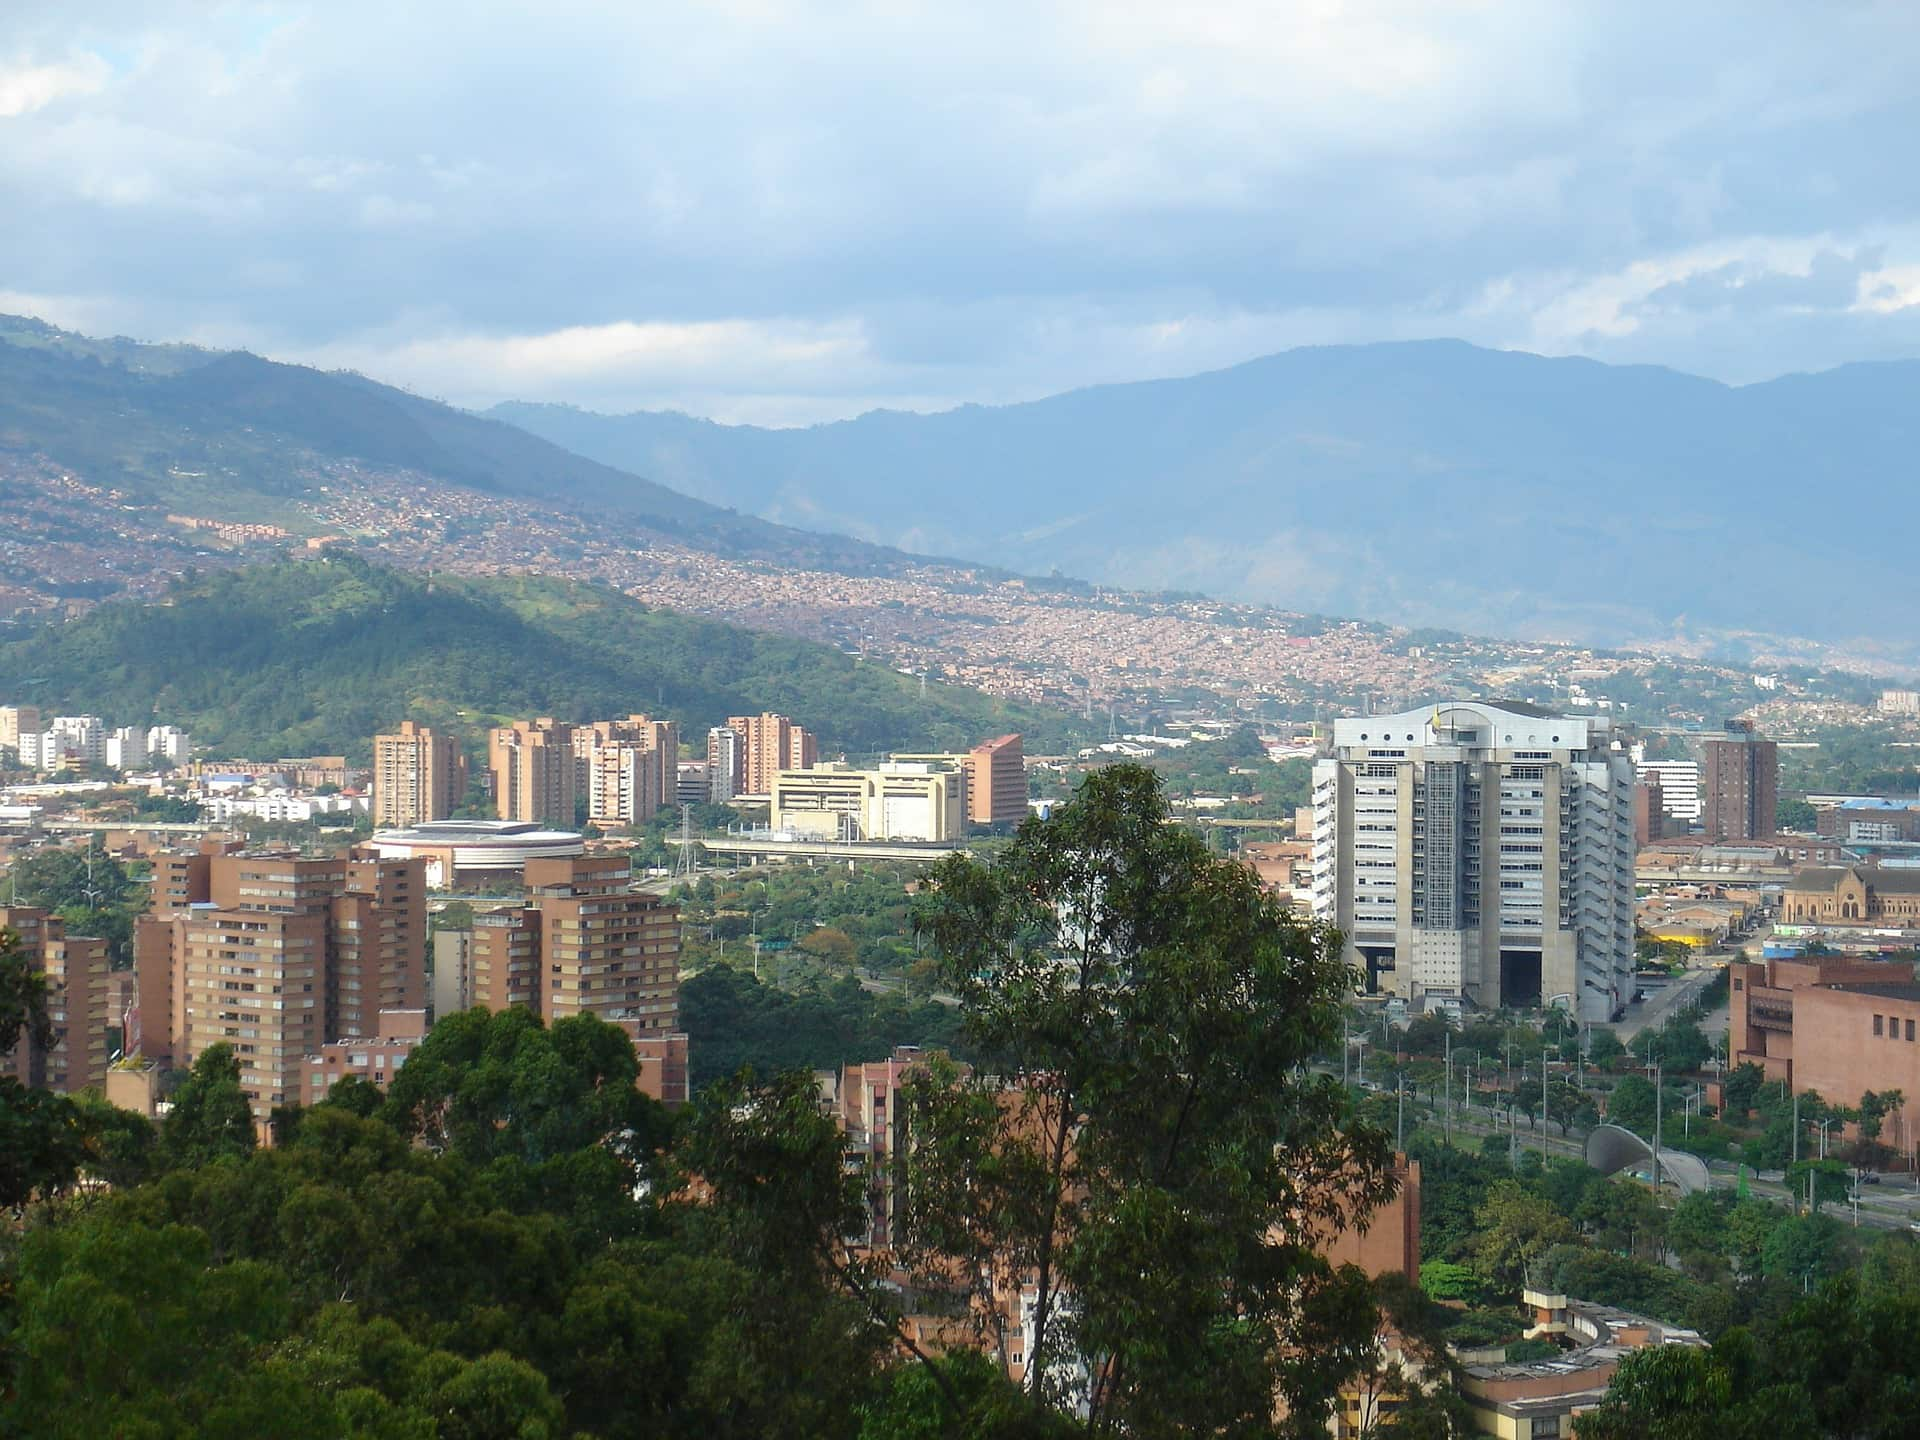 The city of Medellin in Colombia taken from above